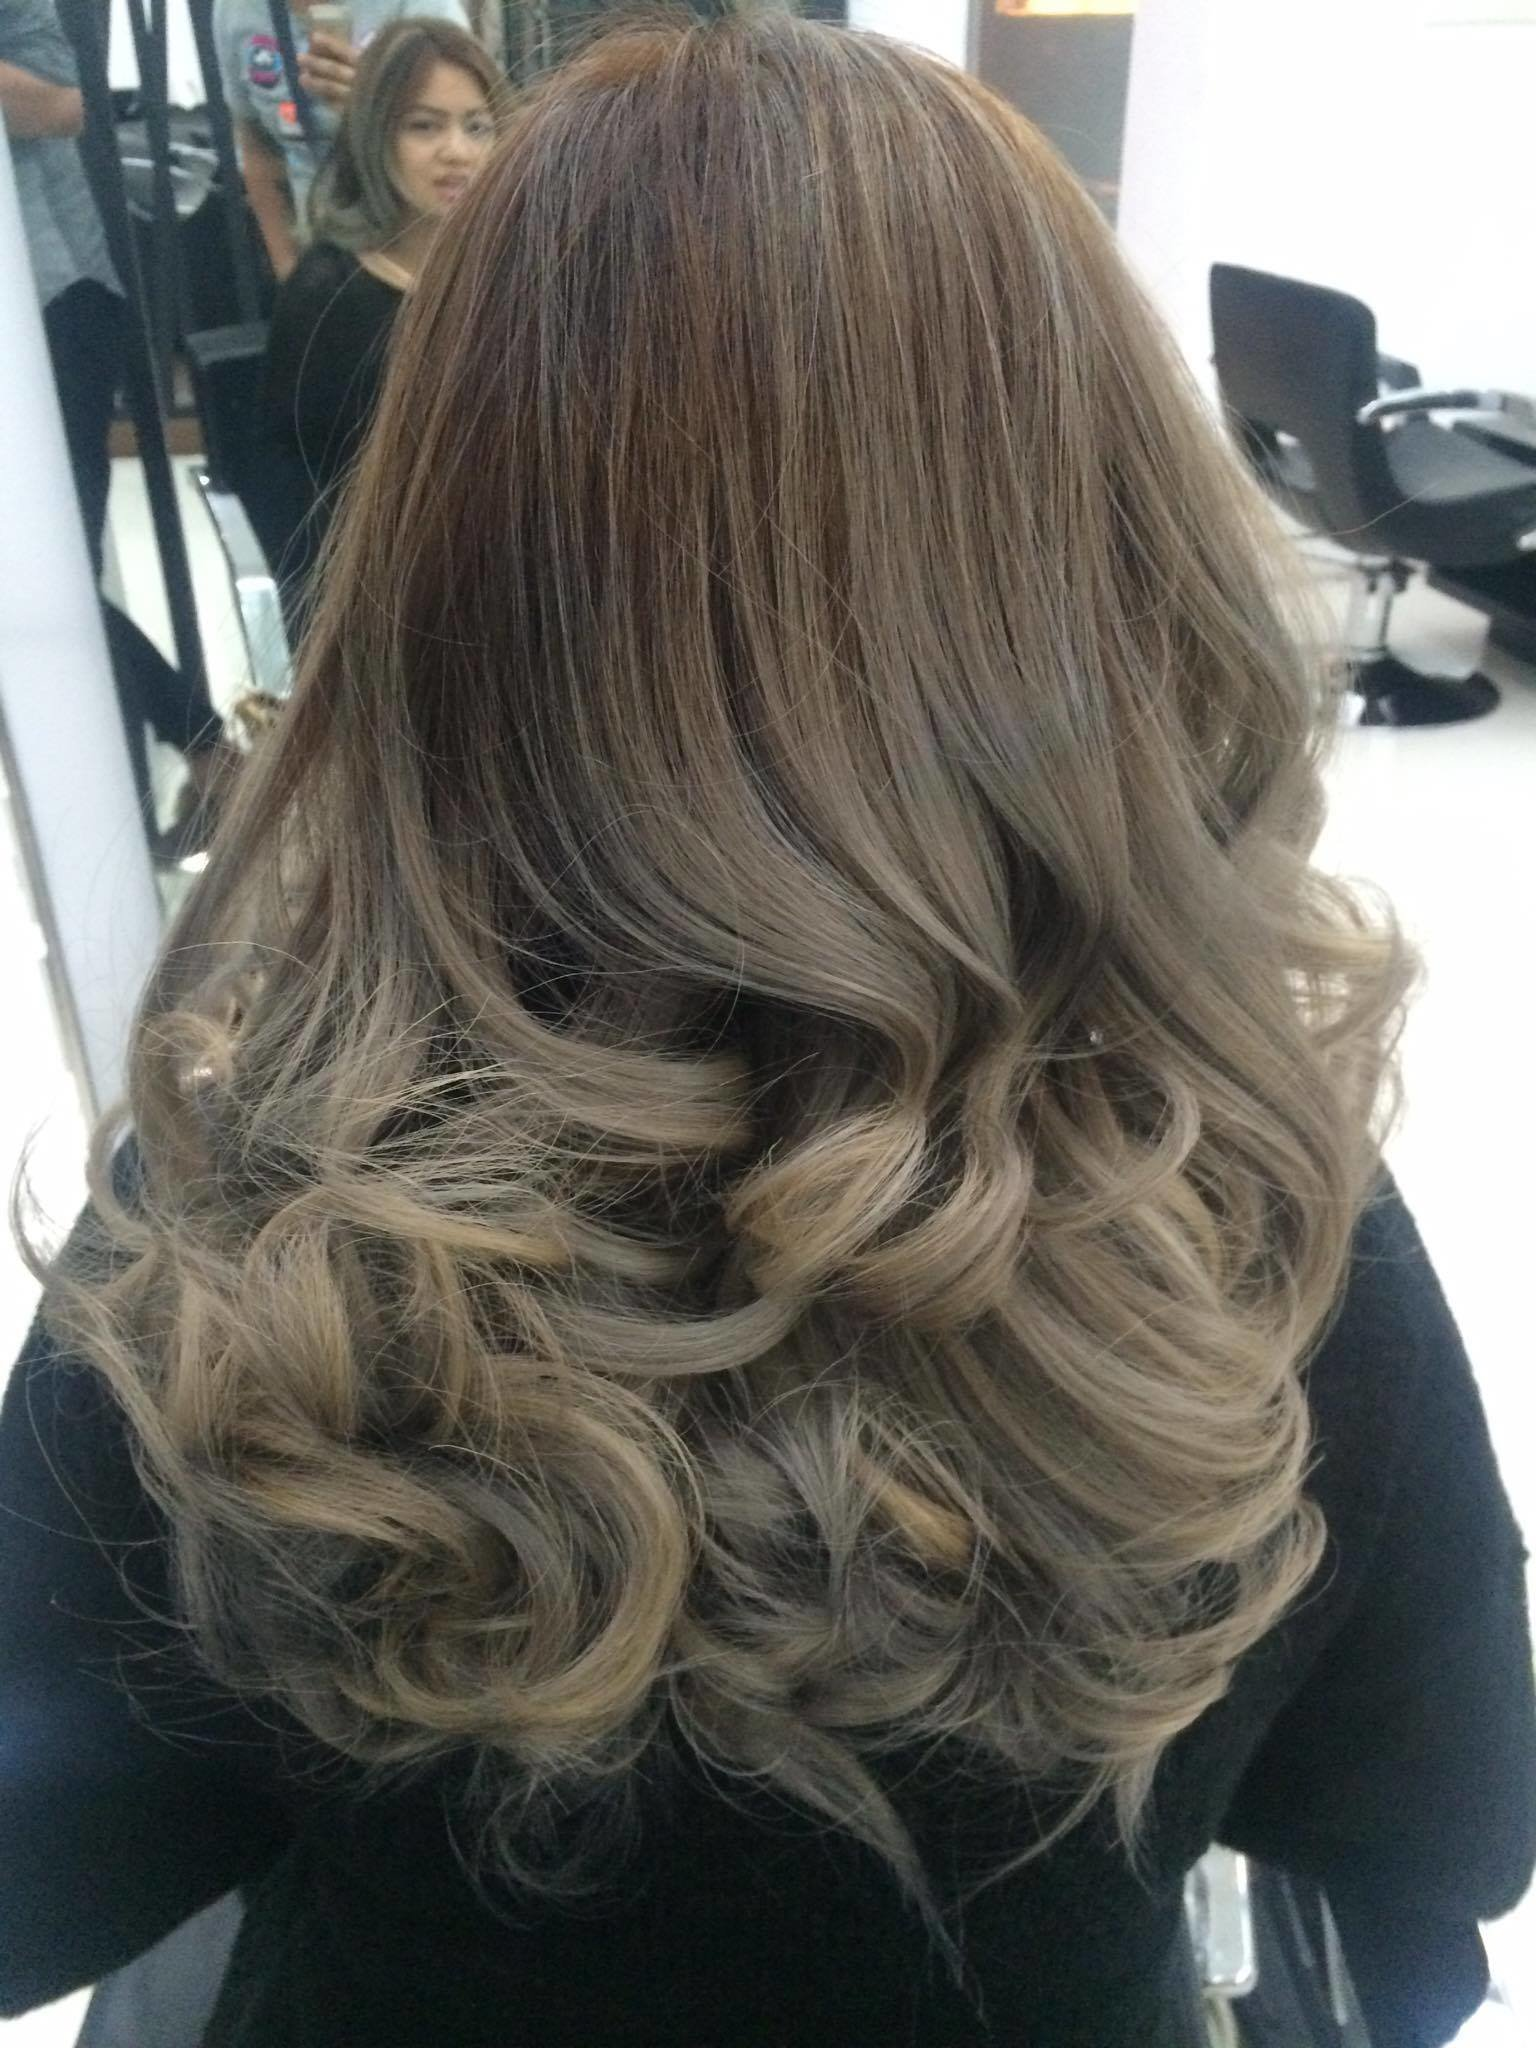 The Best Balayage Hair Color At Dot Zero Salon Chet Learns New Today Pictures